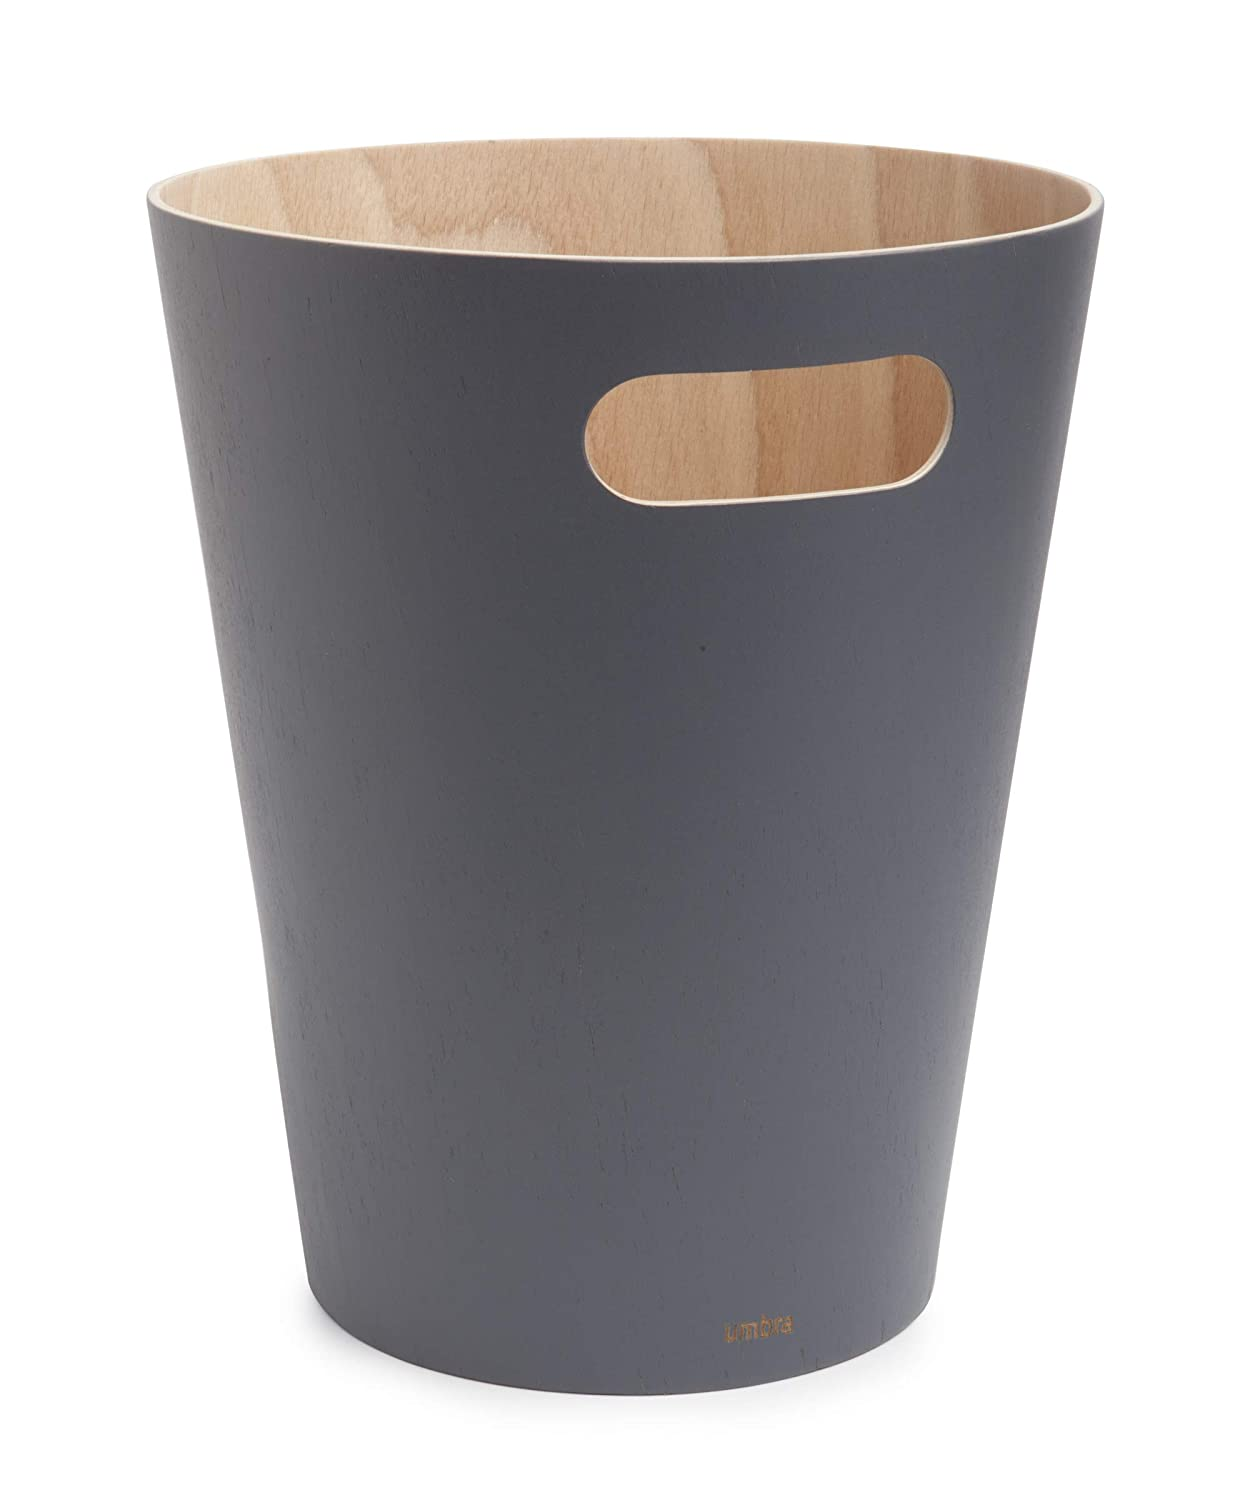 Modern Wooden 4 years warranty Trash Can New Free Shipping Gallon Charcoal 2